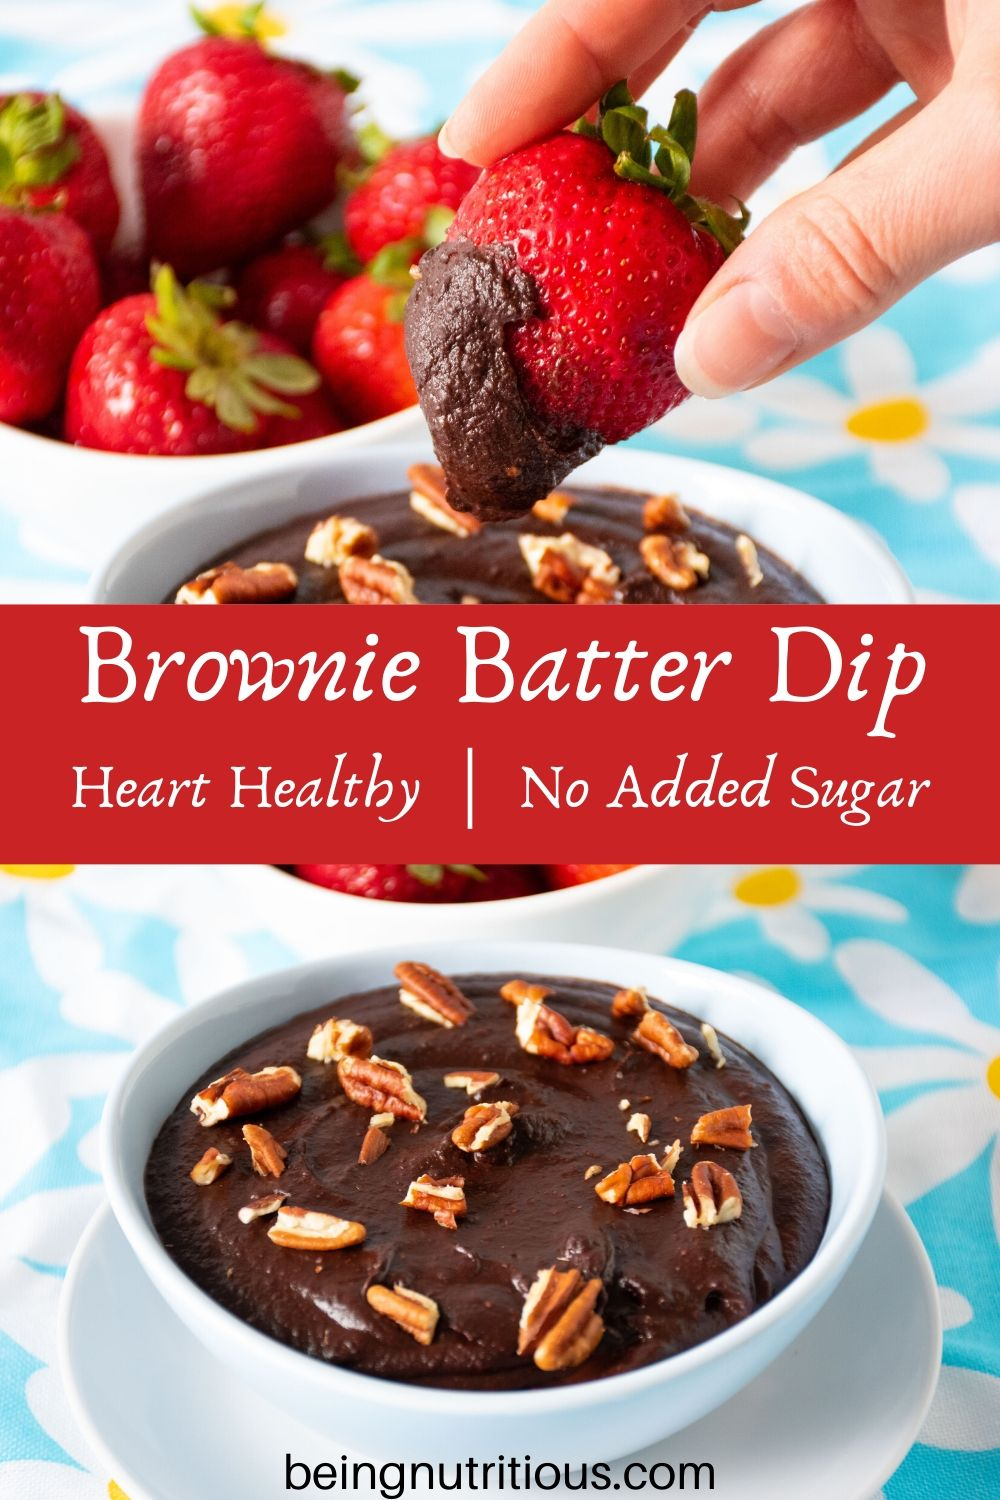 Brownie batter dip in a bowl with a bowl of strawberries behind. A hand holding a strawberry with dip on it in the foreground.